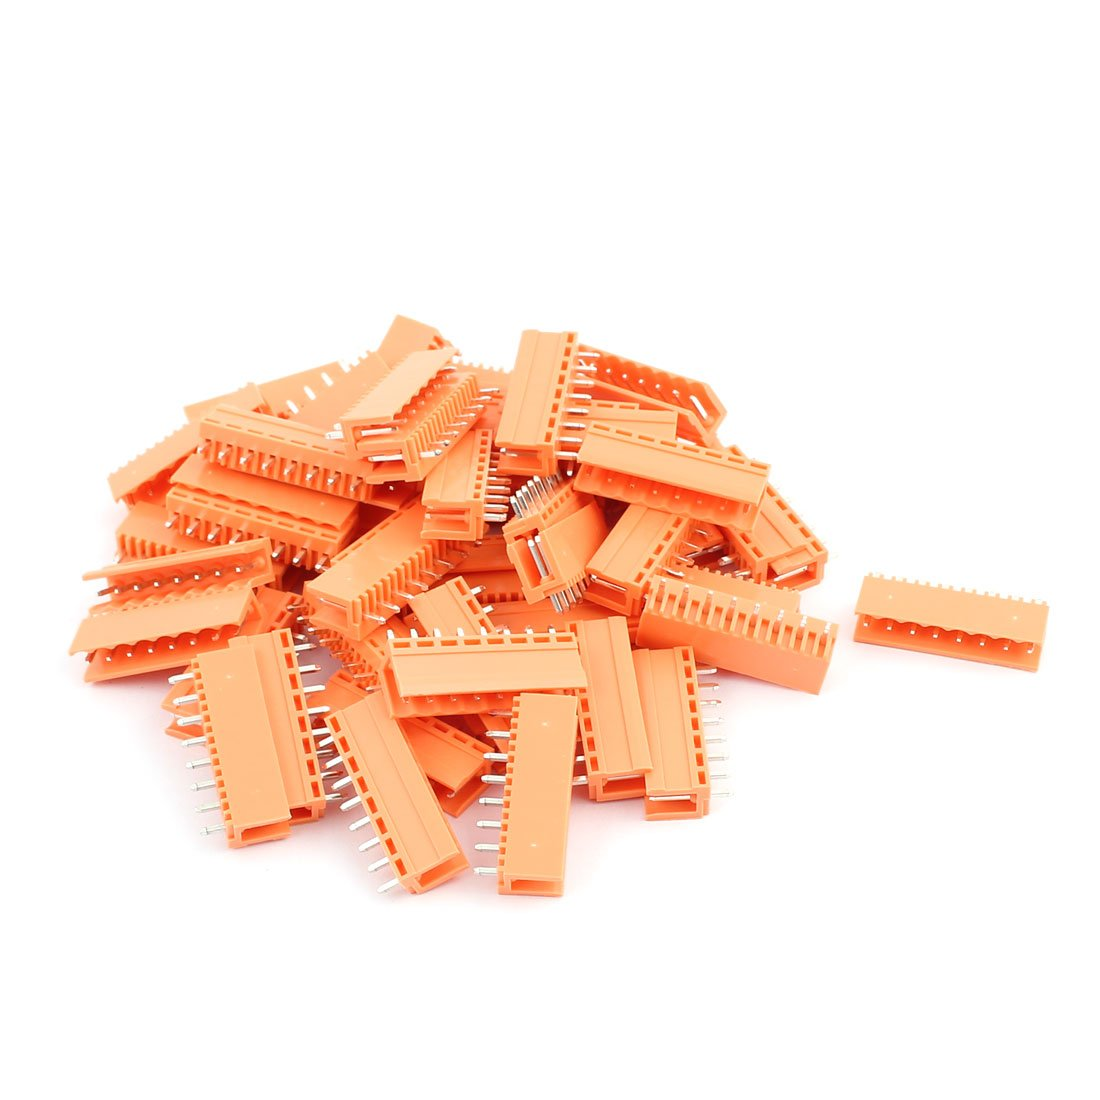 uxcell 50Pcs AC300V 3.96mm Pitch 8P Straight Needle Seat Plug-In PCB Terminal Block Connector